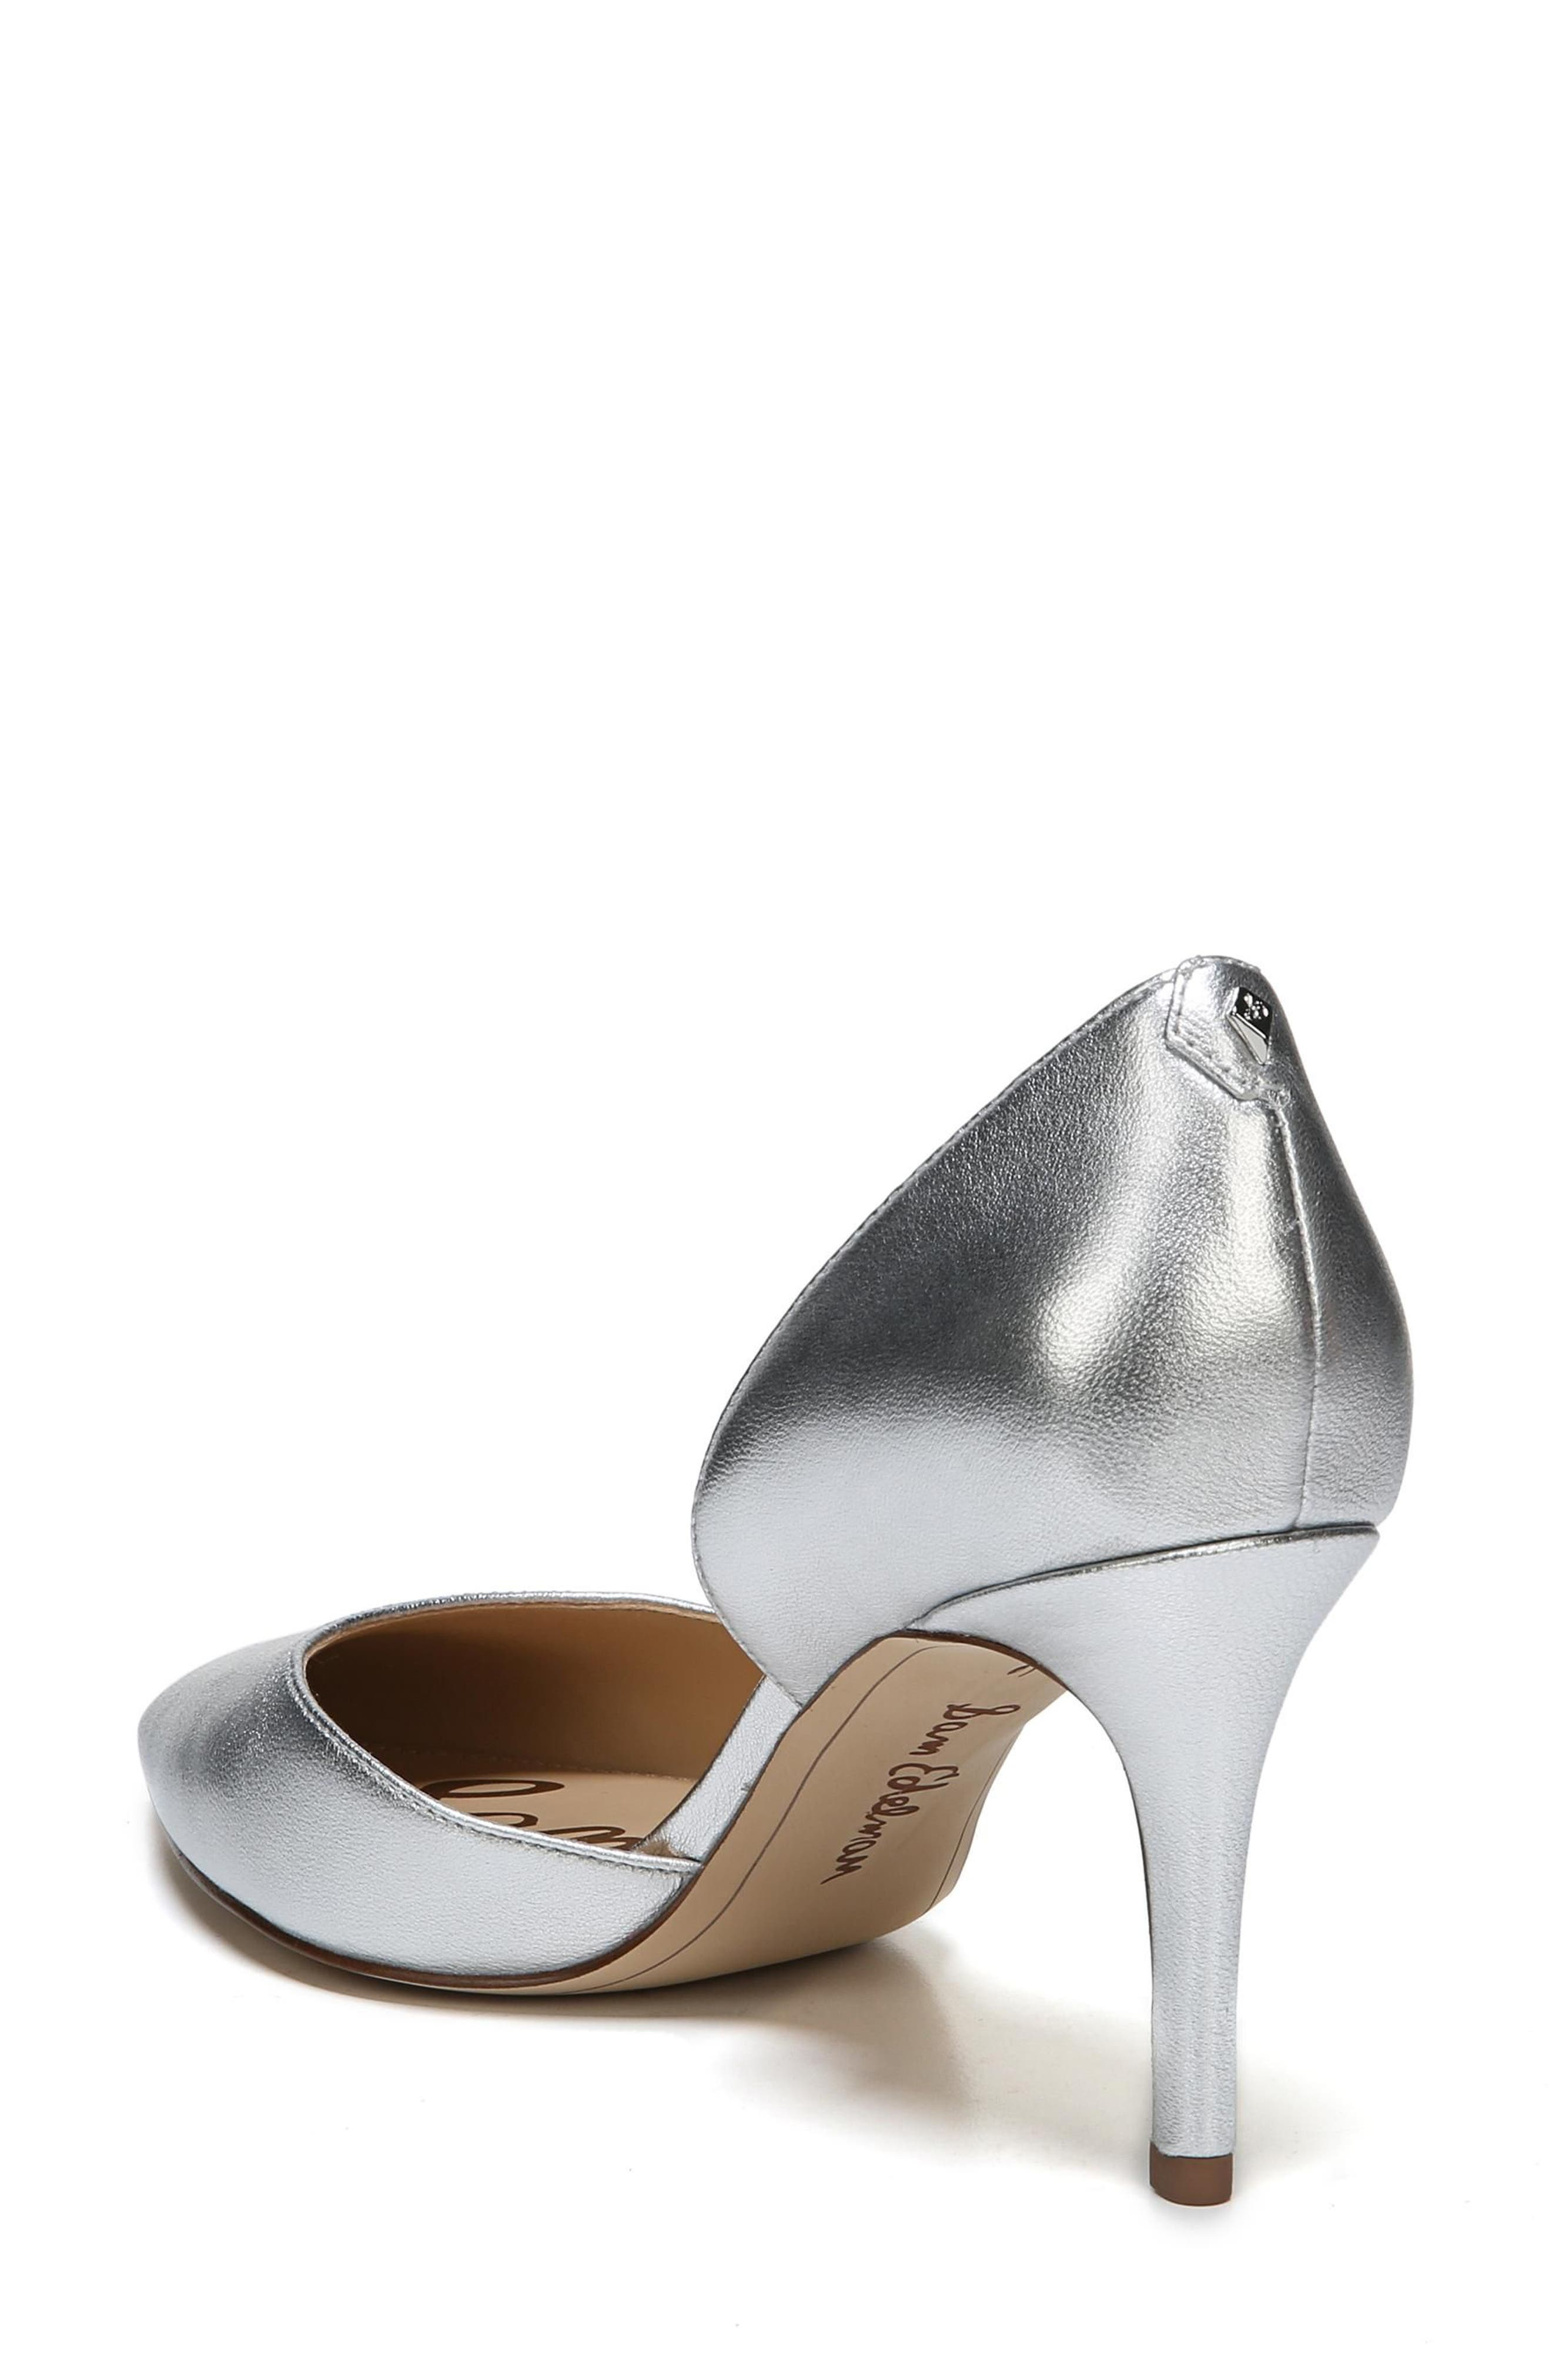 'Telsa' d'Orsay Pointy Toe Pump,                             Alternate thumbnail 2, color,                             040